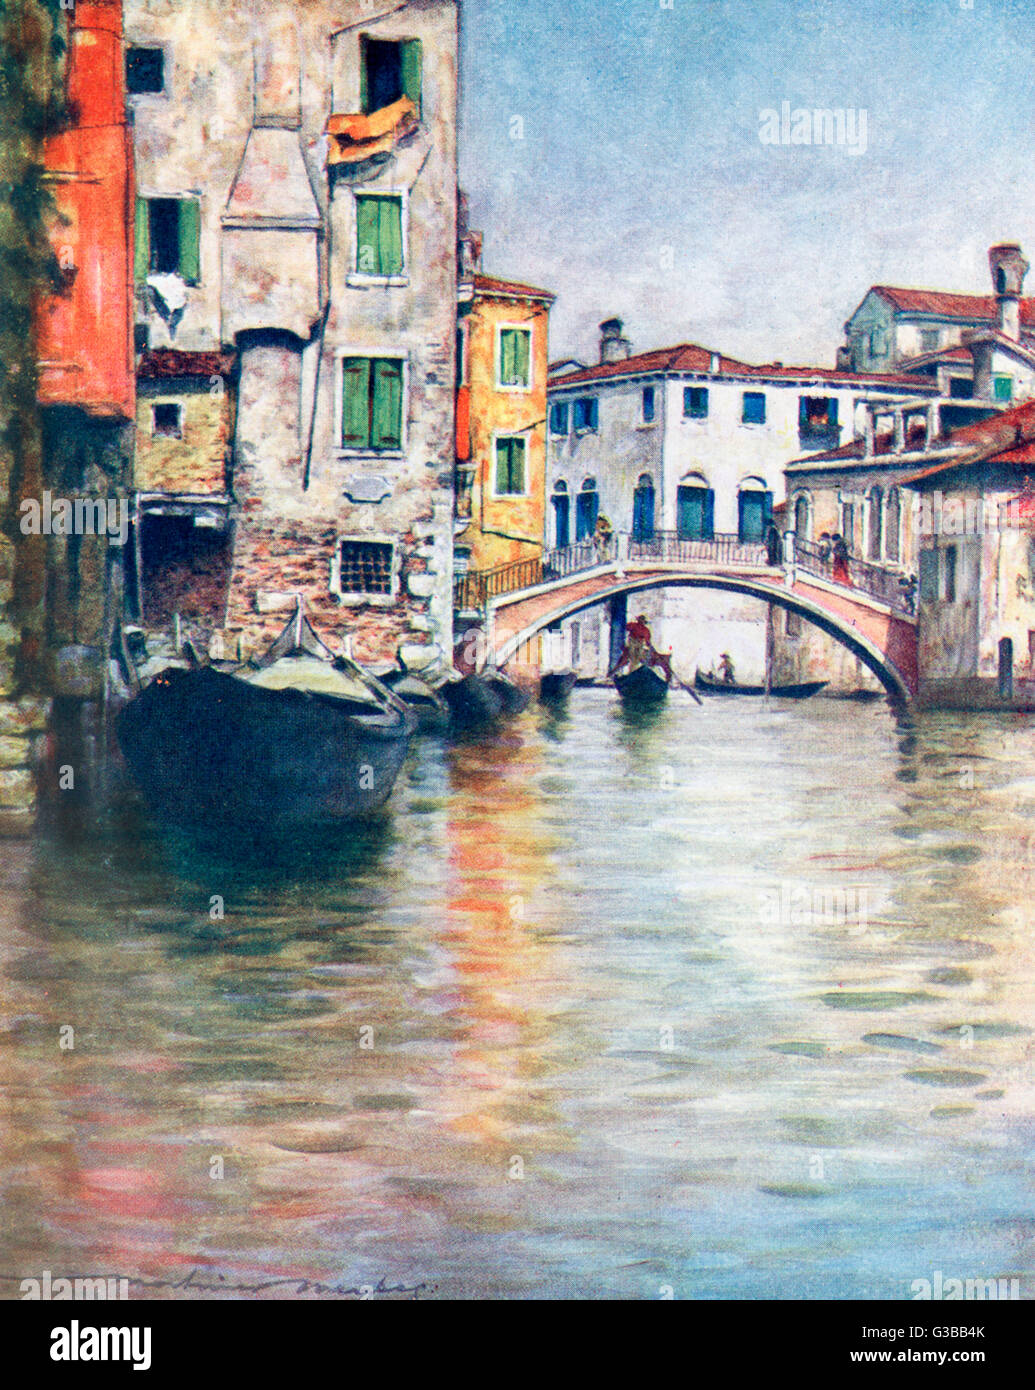 Bridge over a Venetian canal.         Date: 1916 - Stock Image